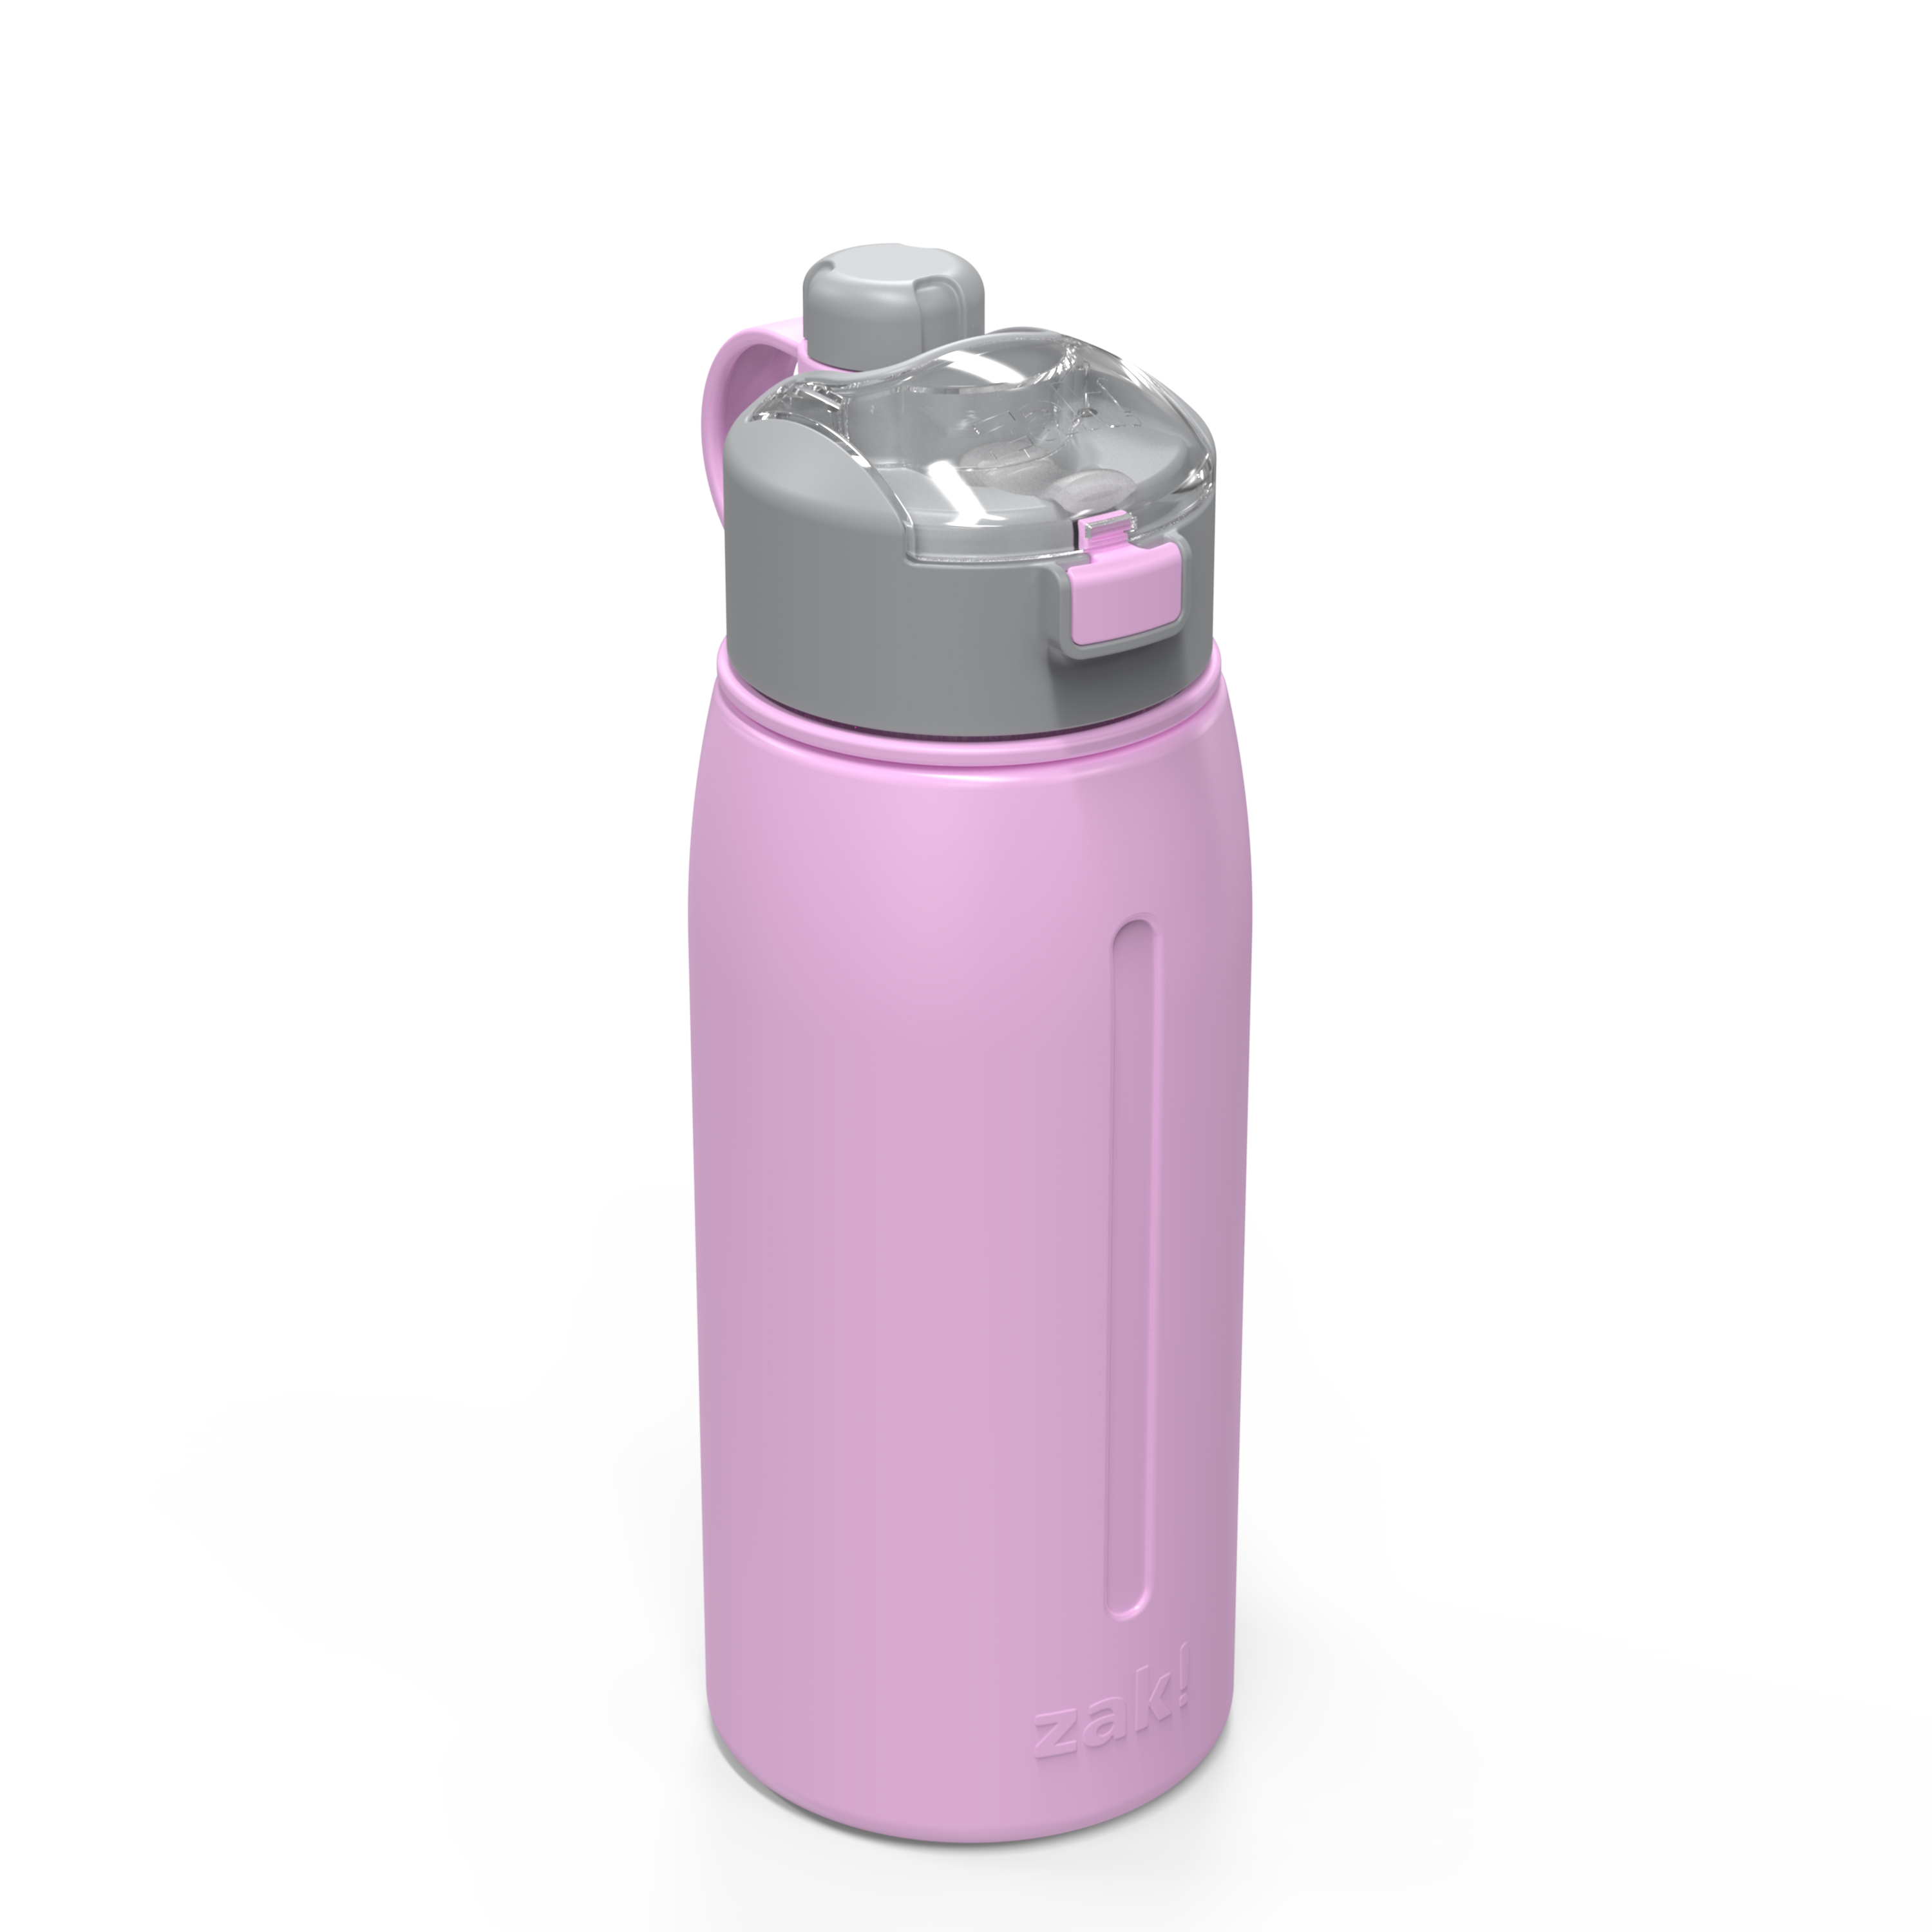 Genesis 24 ounce Vacuum Insulated Stainless Steel Tumbler, Lilac slideshow image 4